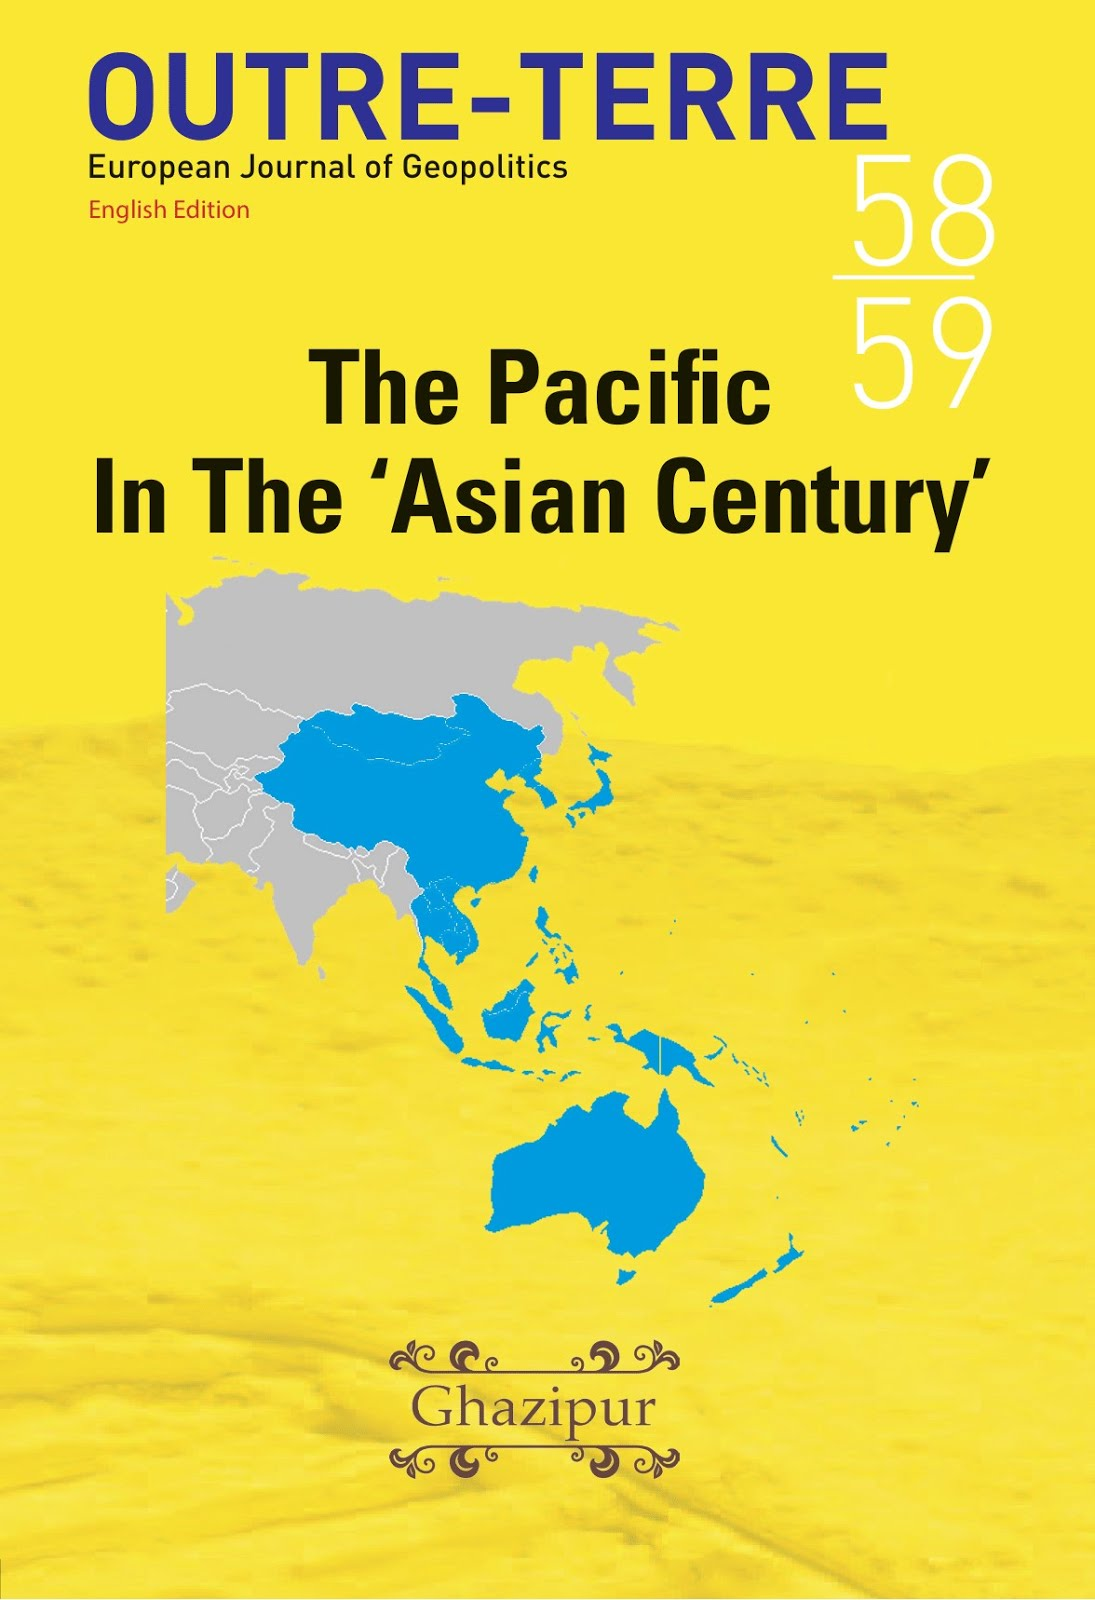 The Pacific in the 'Asian Century'